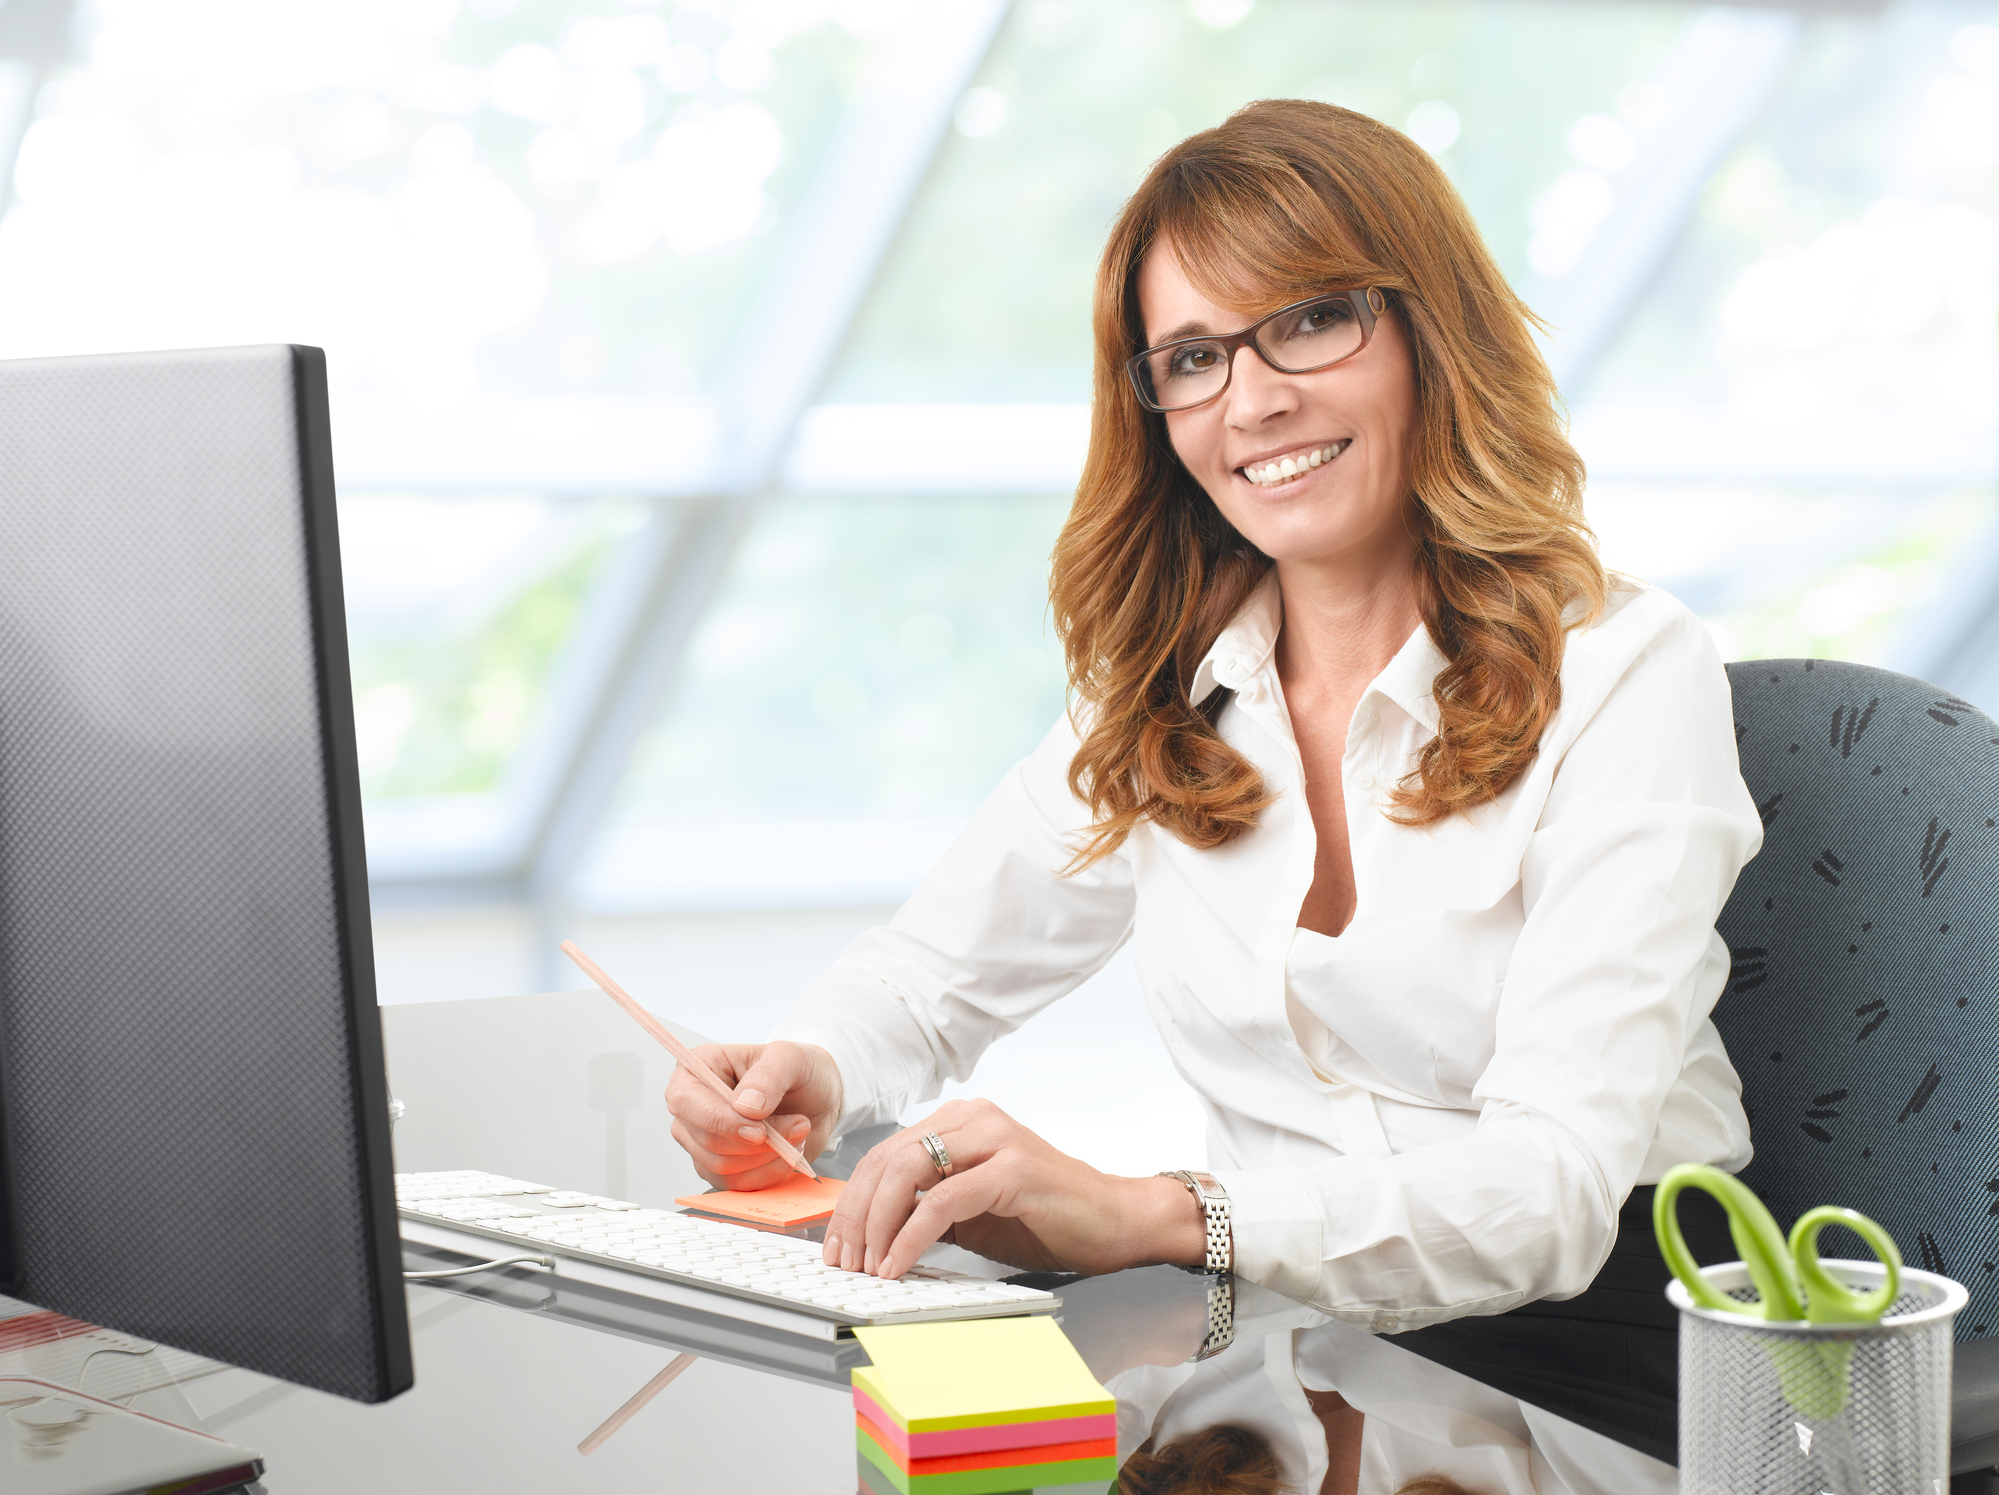 Smiling businesswoman at office desk with a computer